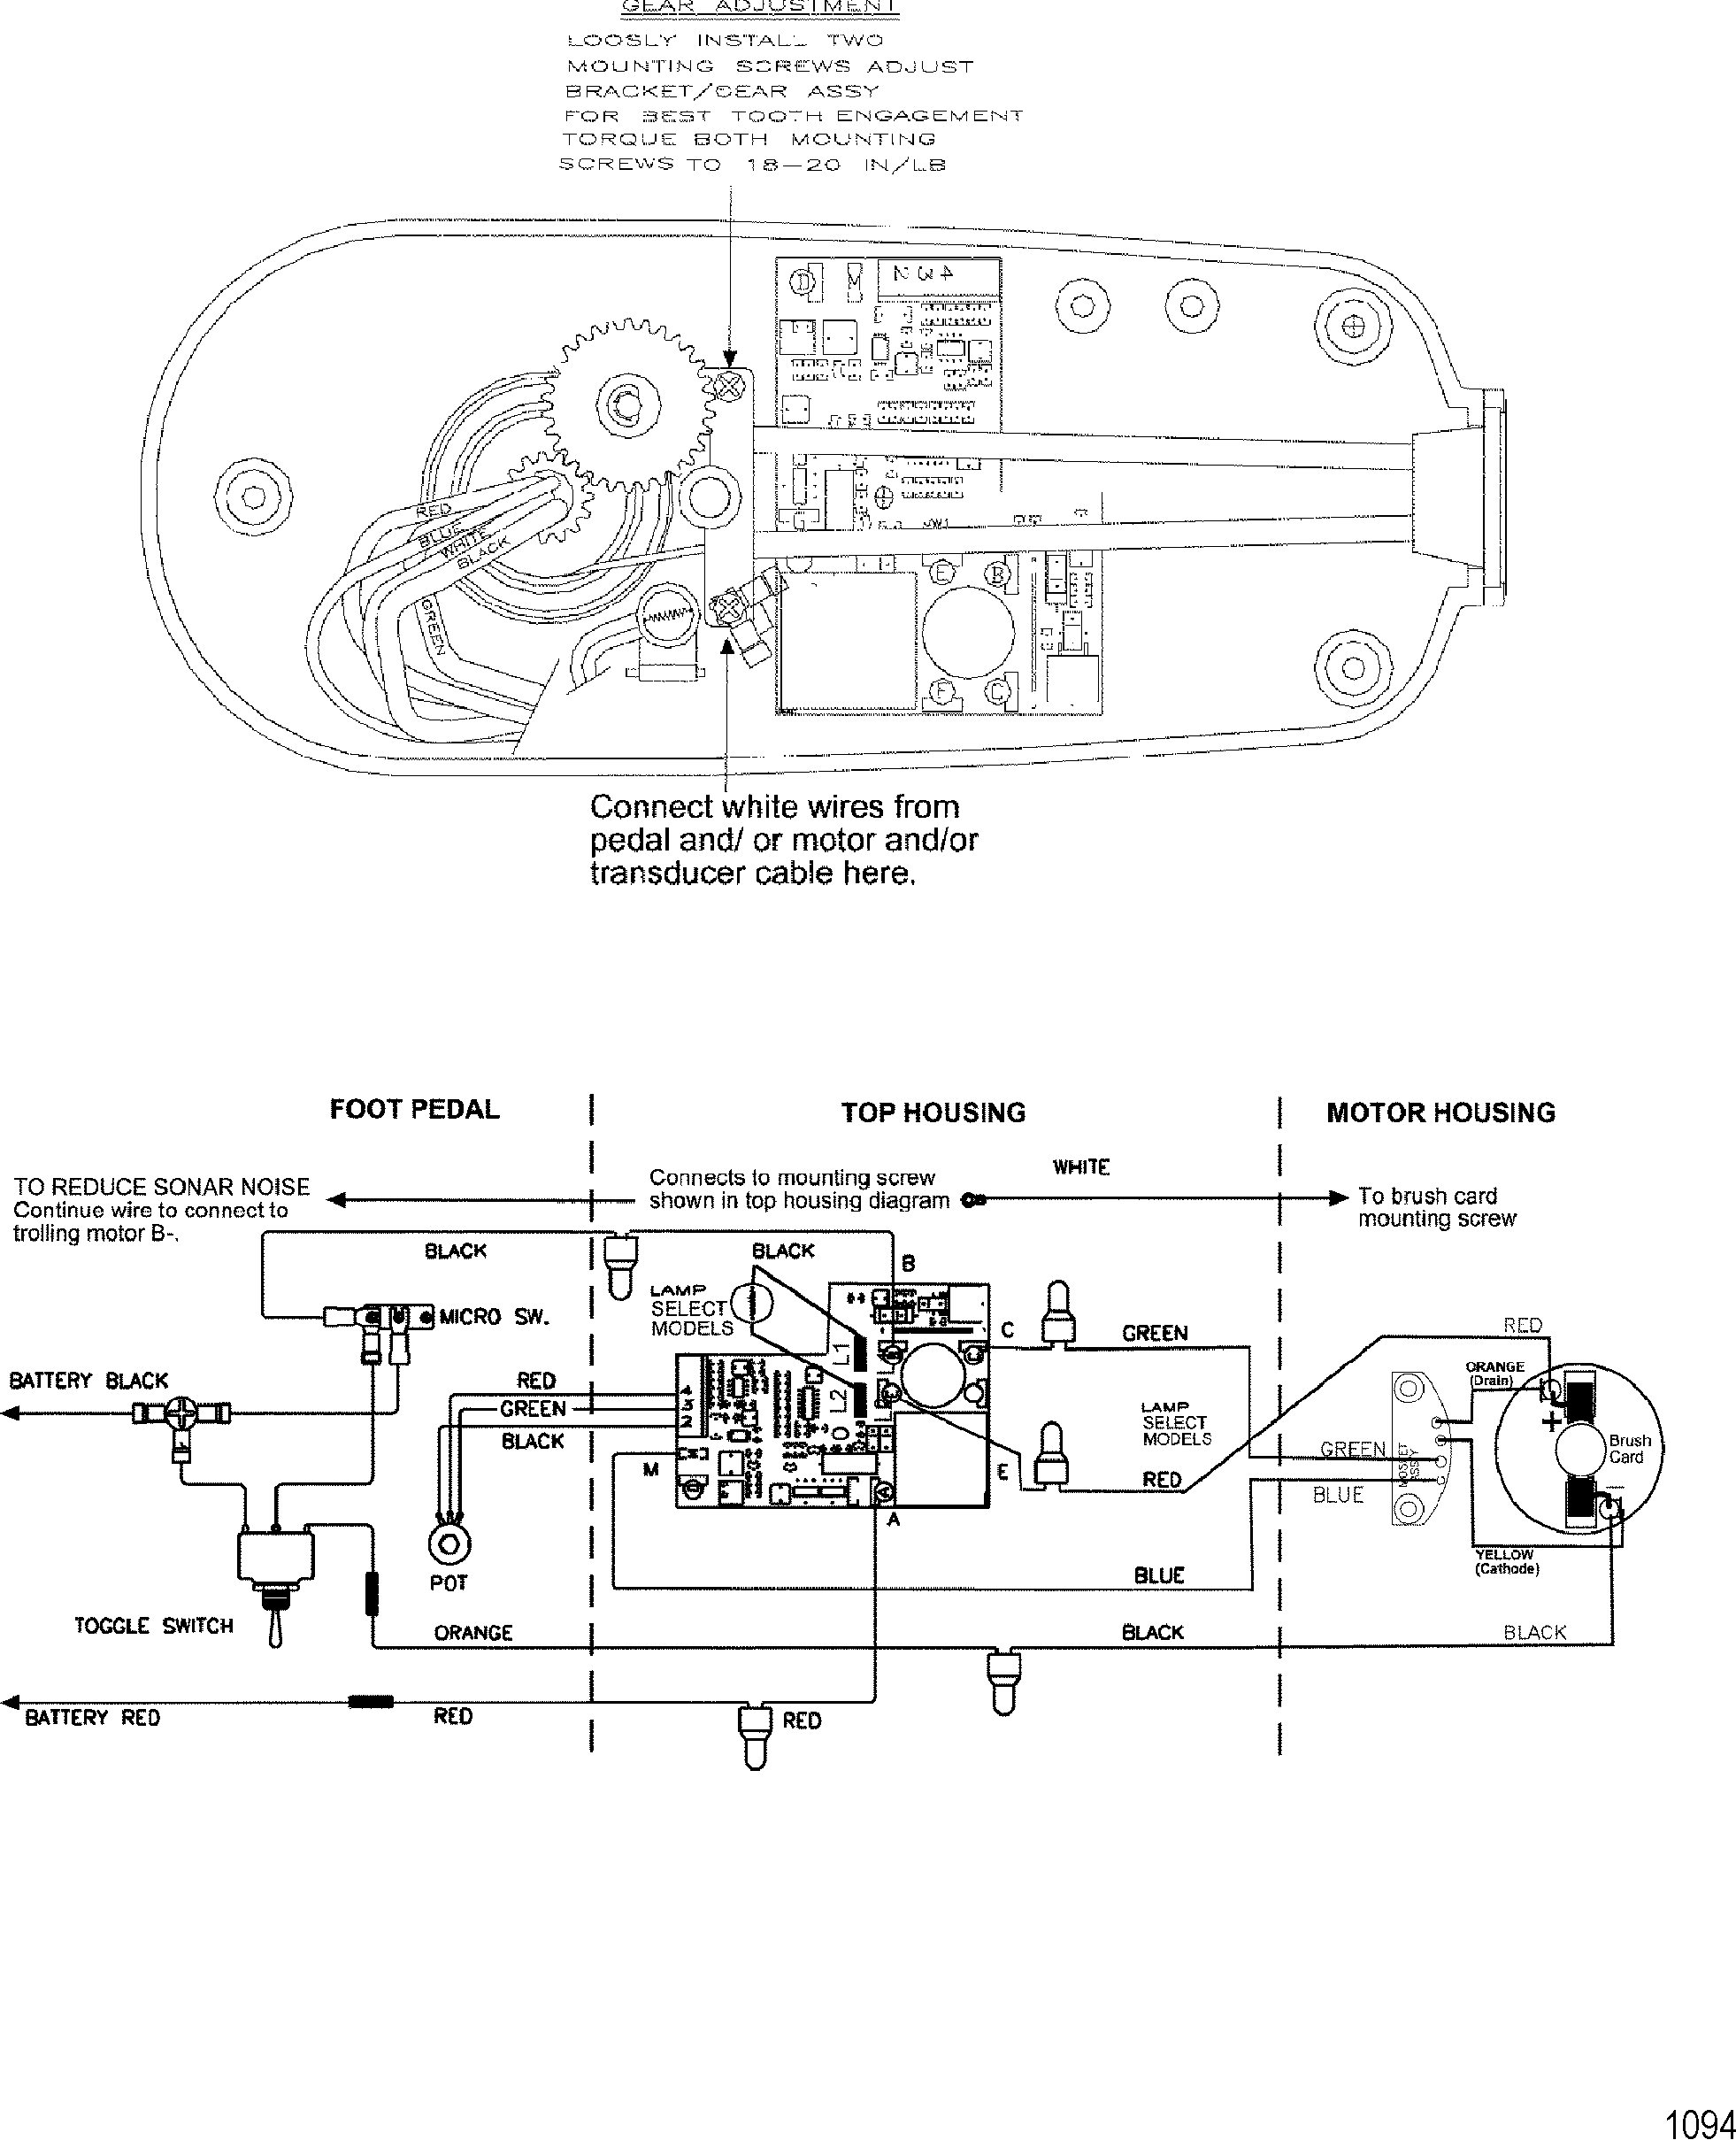 1094 ������� ��������� trolling motor motorguide tour edition series mercury thruster trolling motor wiring diagram at reclaimingppi.co